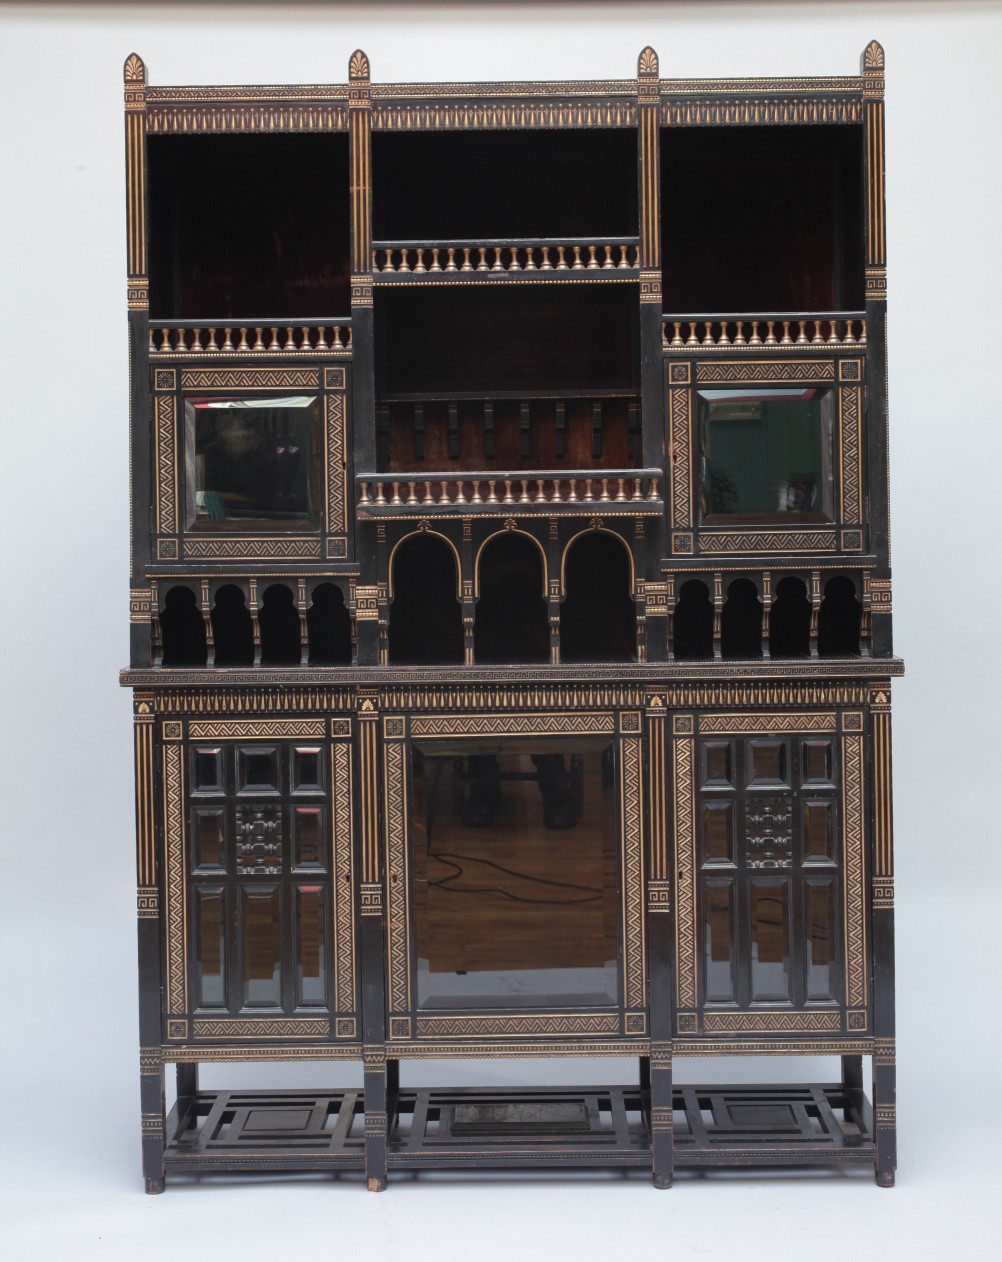 Christopher Dresser (1834-1904) Cabinet, c. 1875. Ebonised and gilded mahogany, glazed doors, with metal disc impressed W. Booty